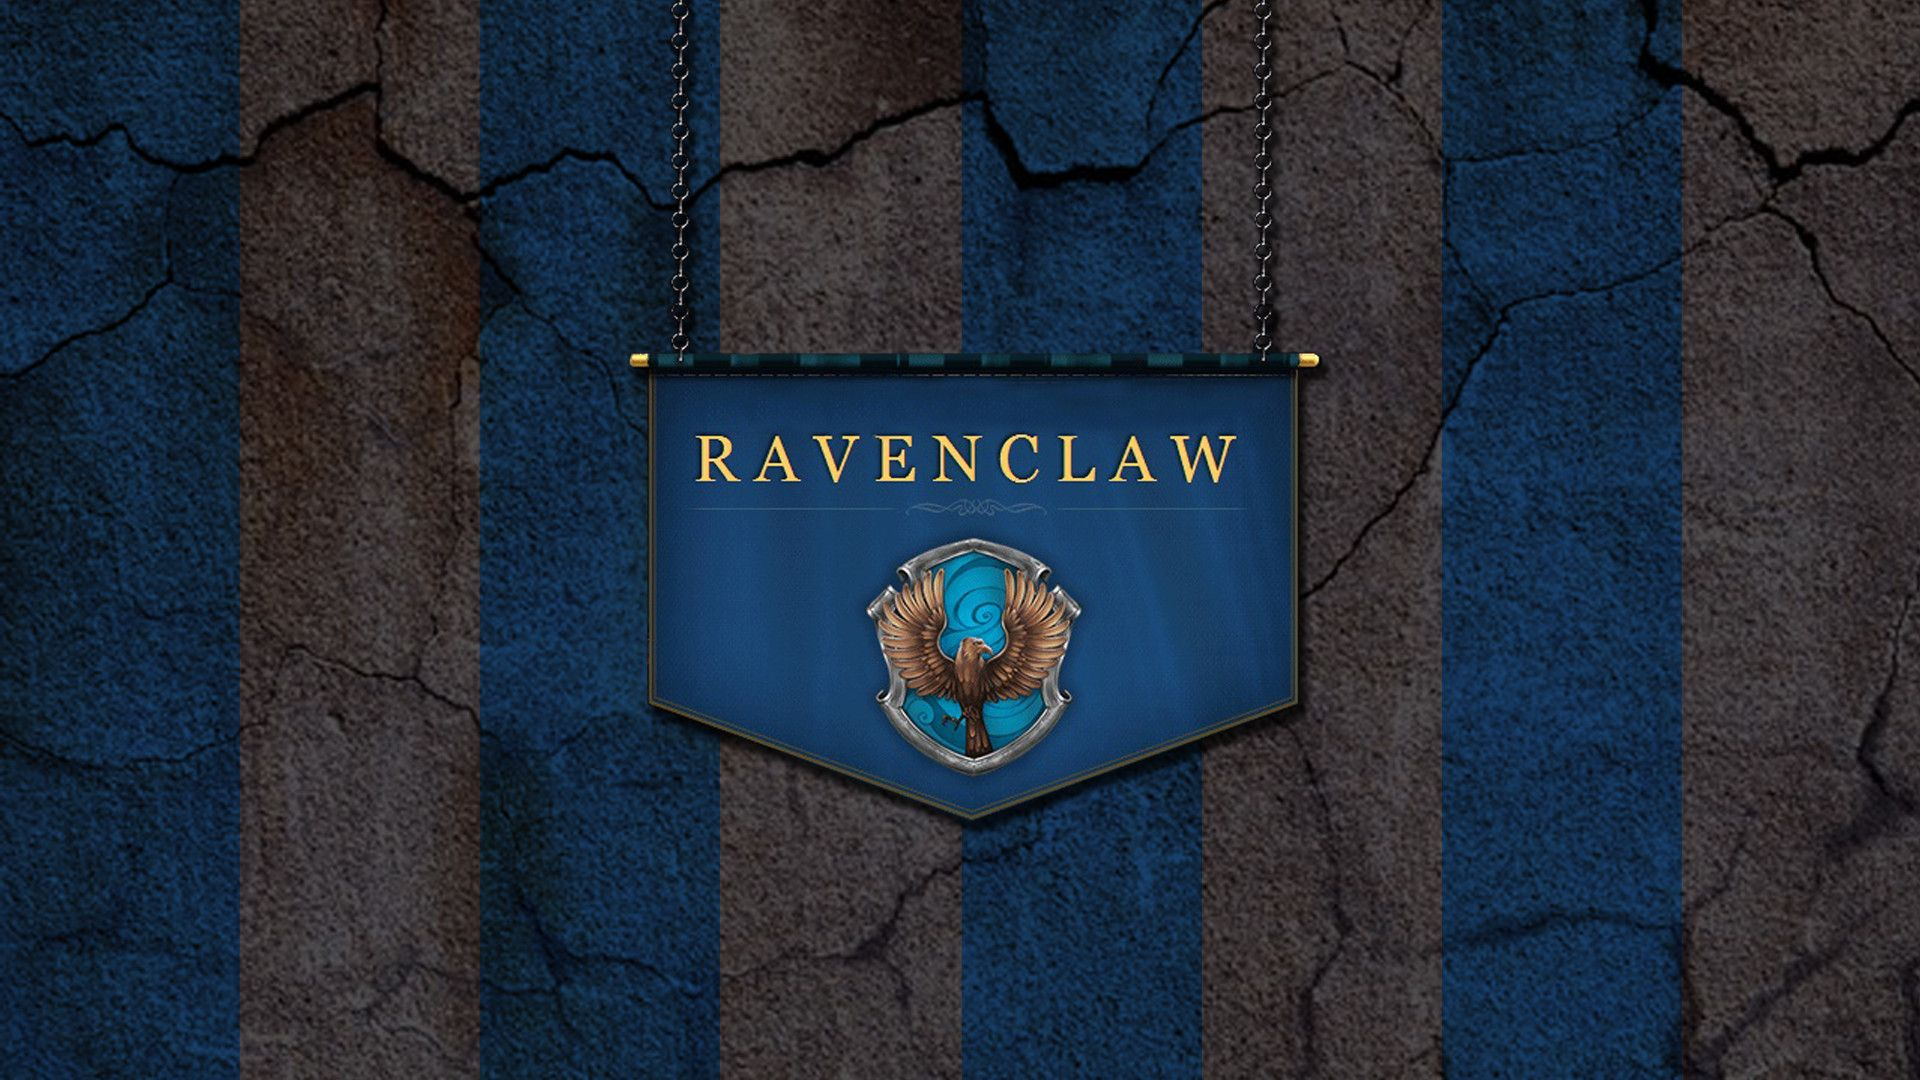 Ravenclaw Wallpaper Hd 4 Get Hd Wallpapers Free Marvel Vingadores Vingadores Marvel